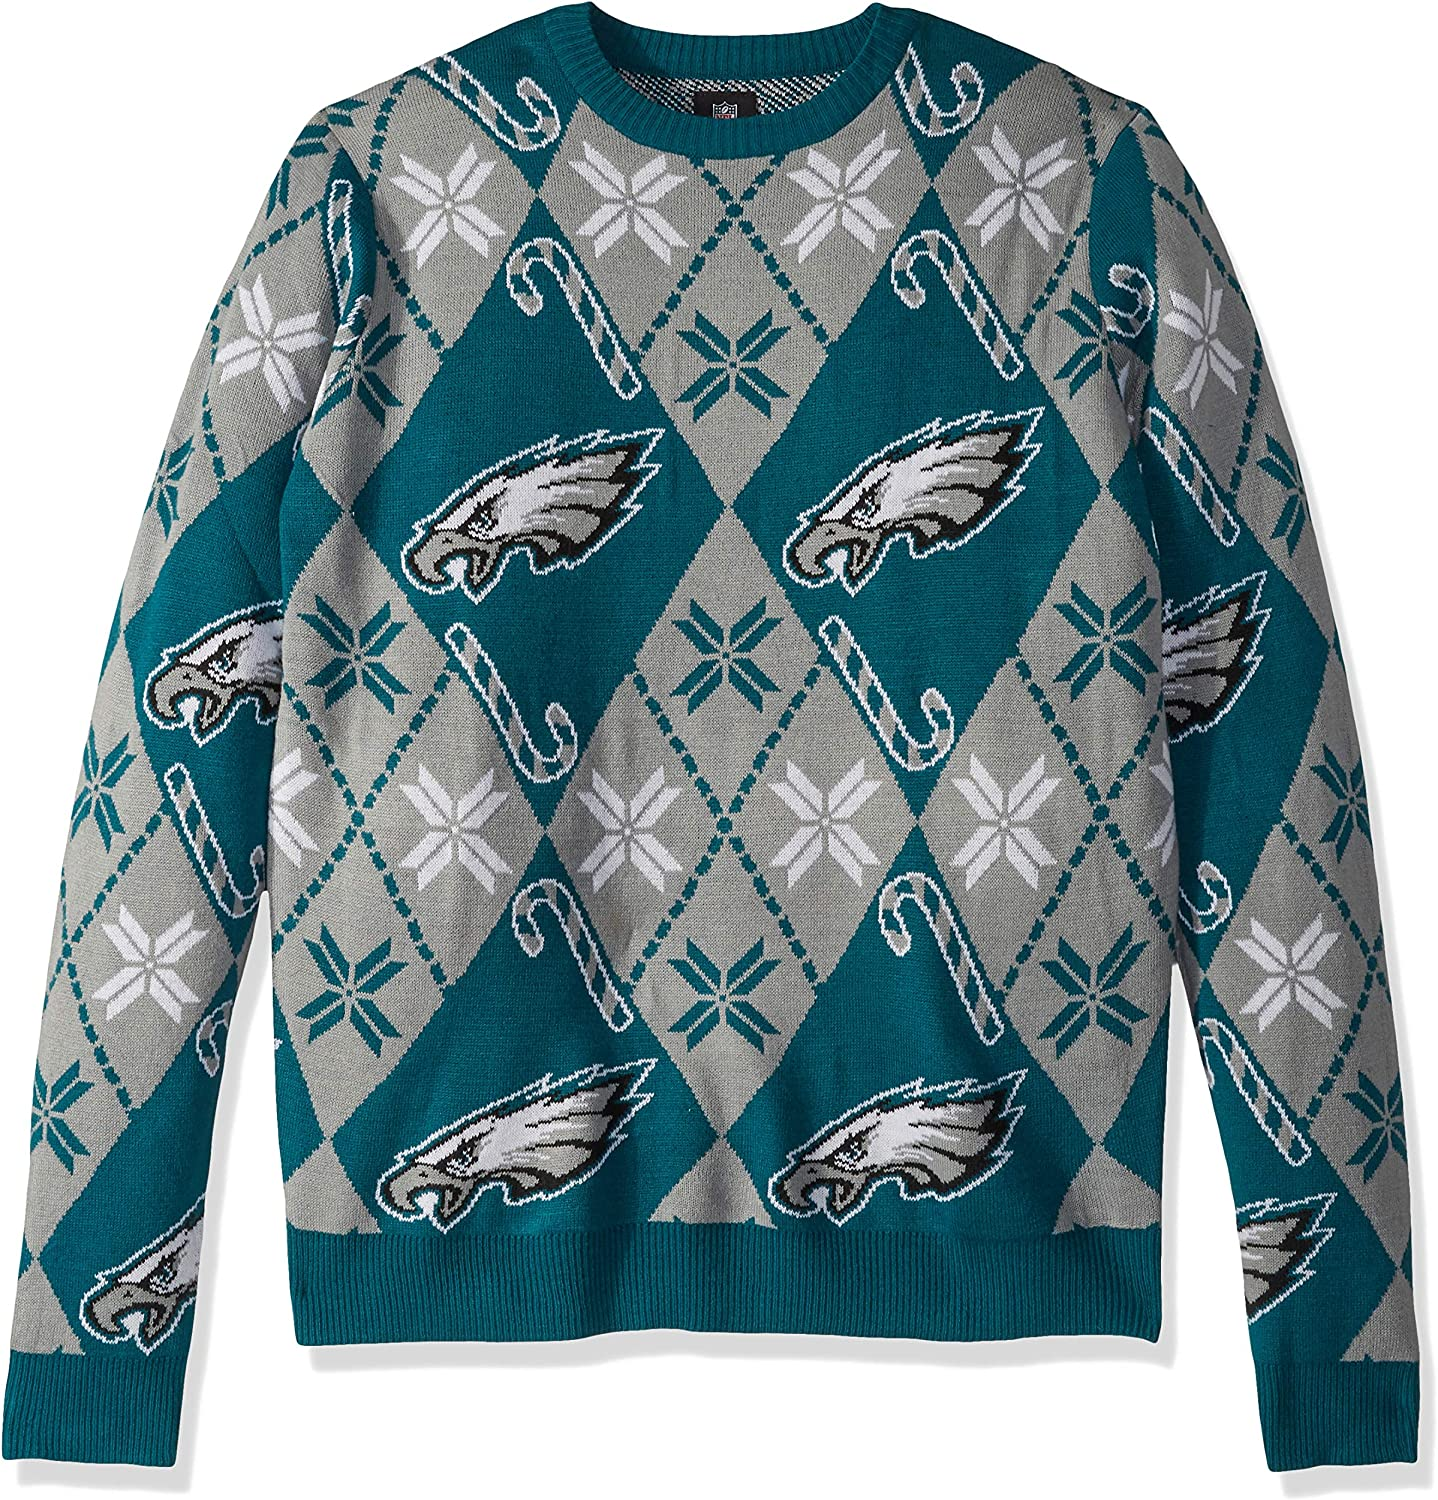 NFL Philadelphia Eagles CANDY CANE REPEAT Ugly Sweater X-Large